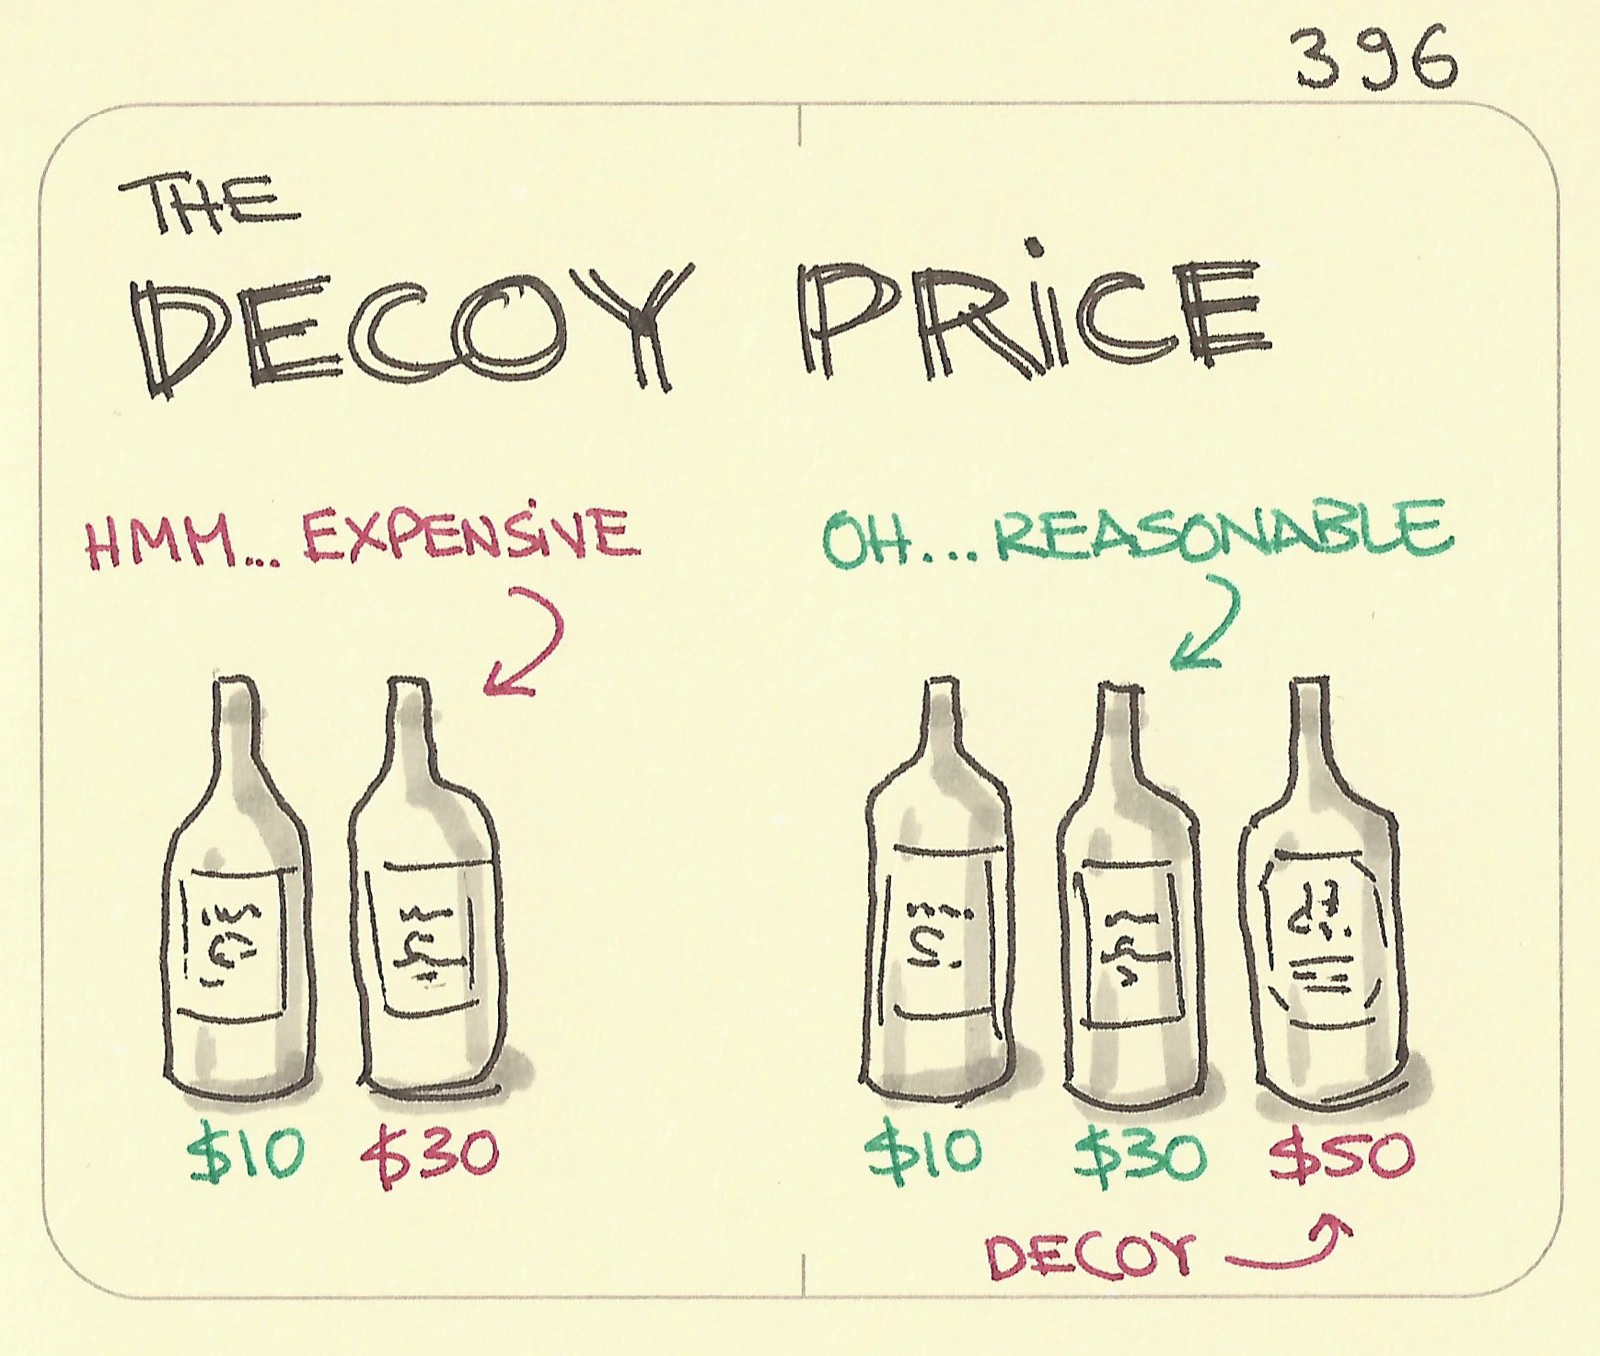 Example of decoy effect as an effective eCommerce sales strategy